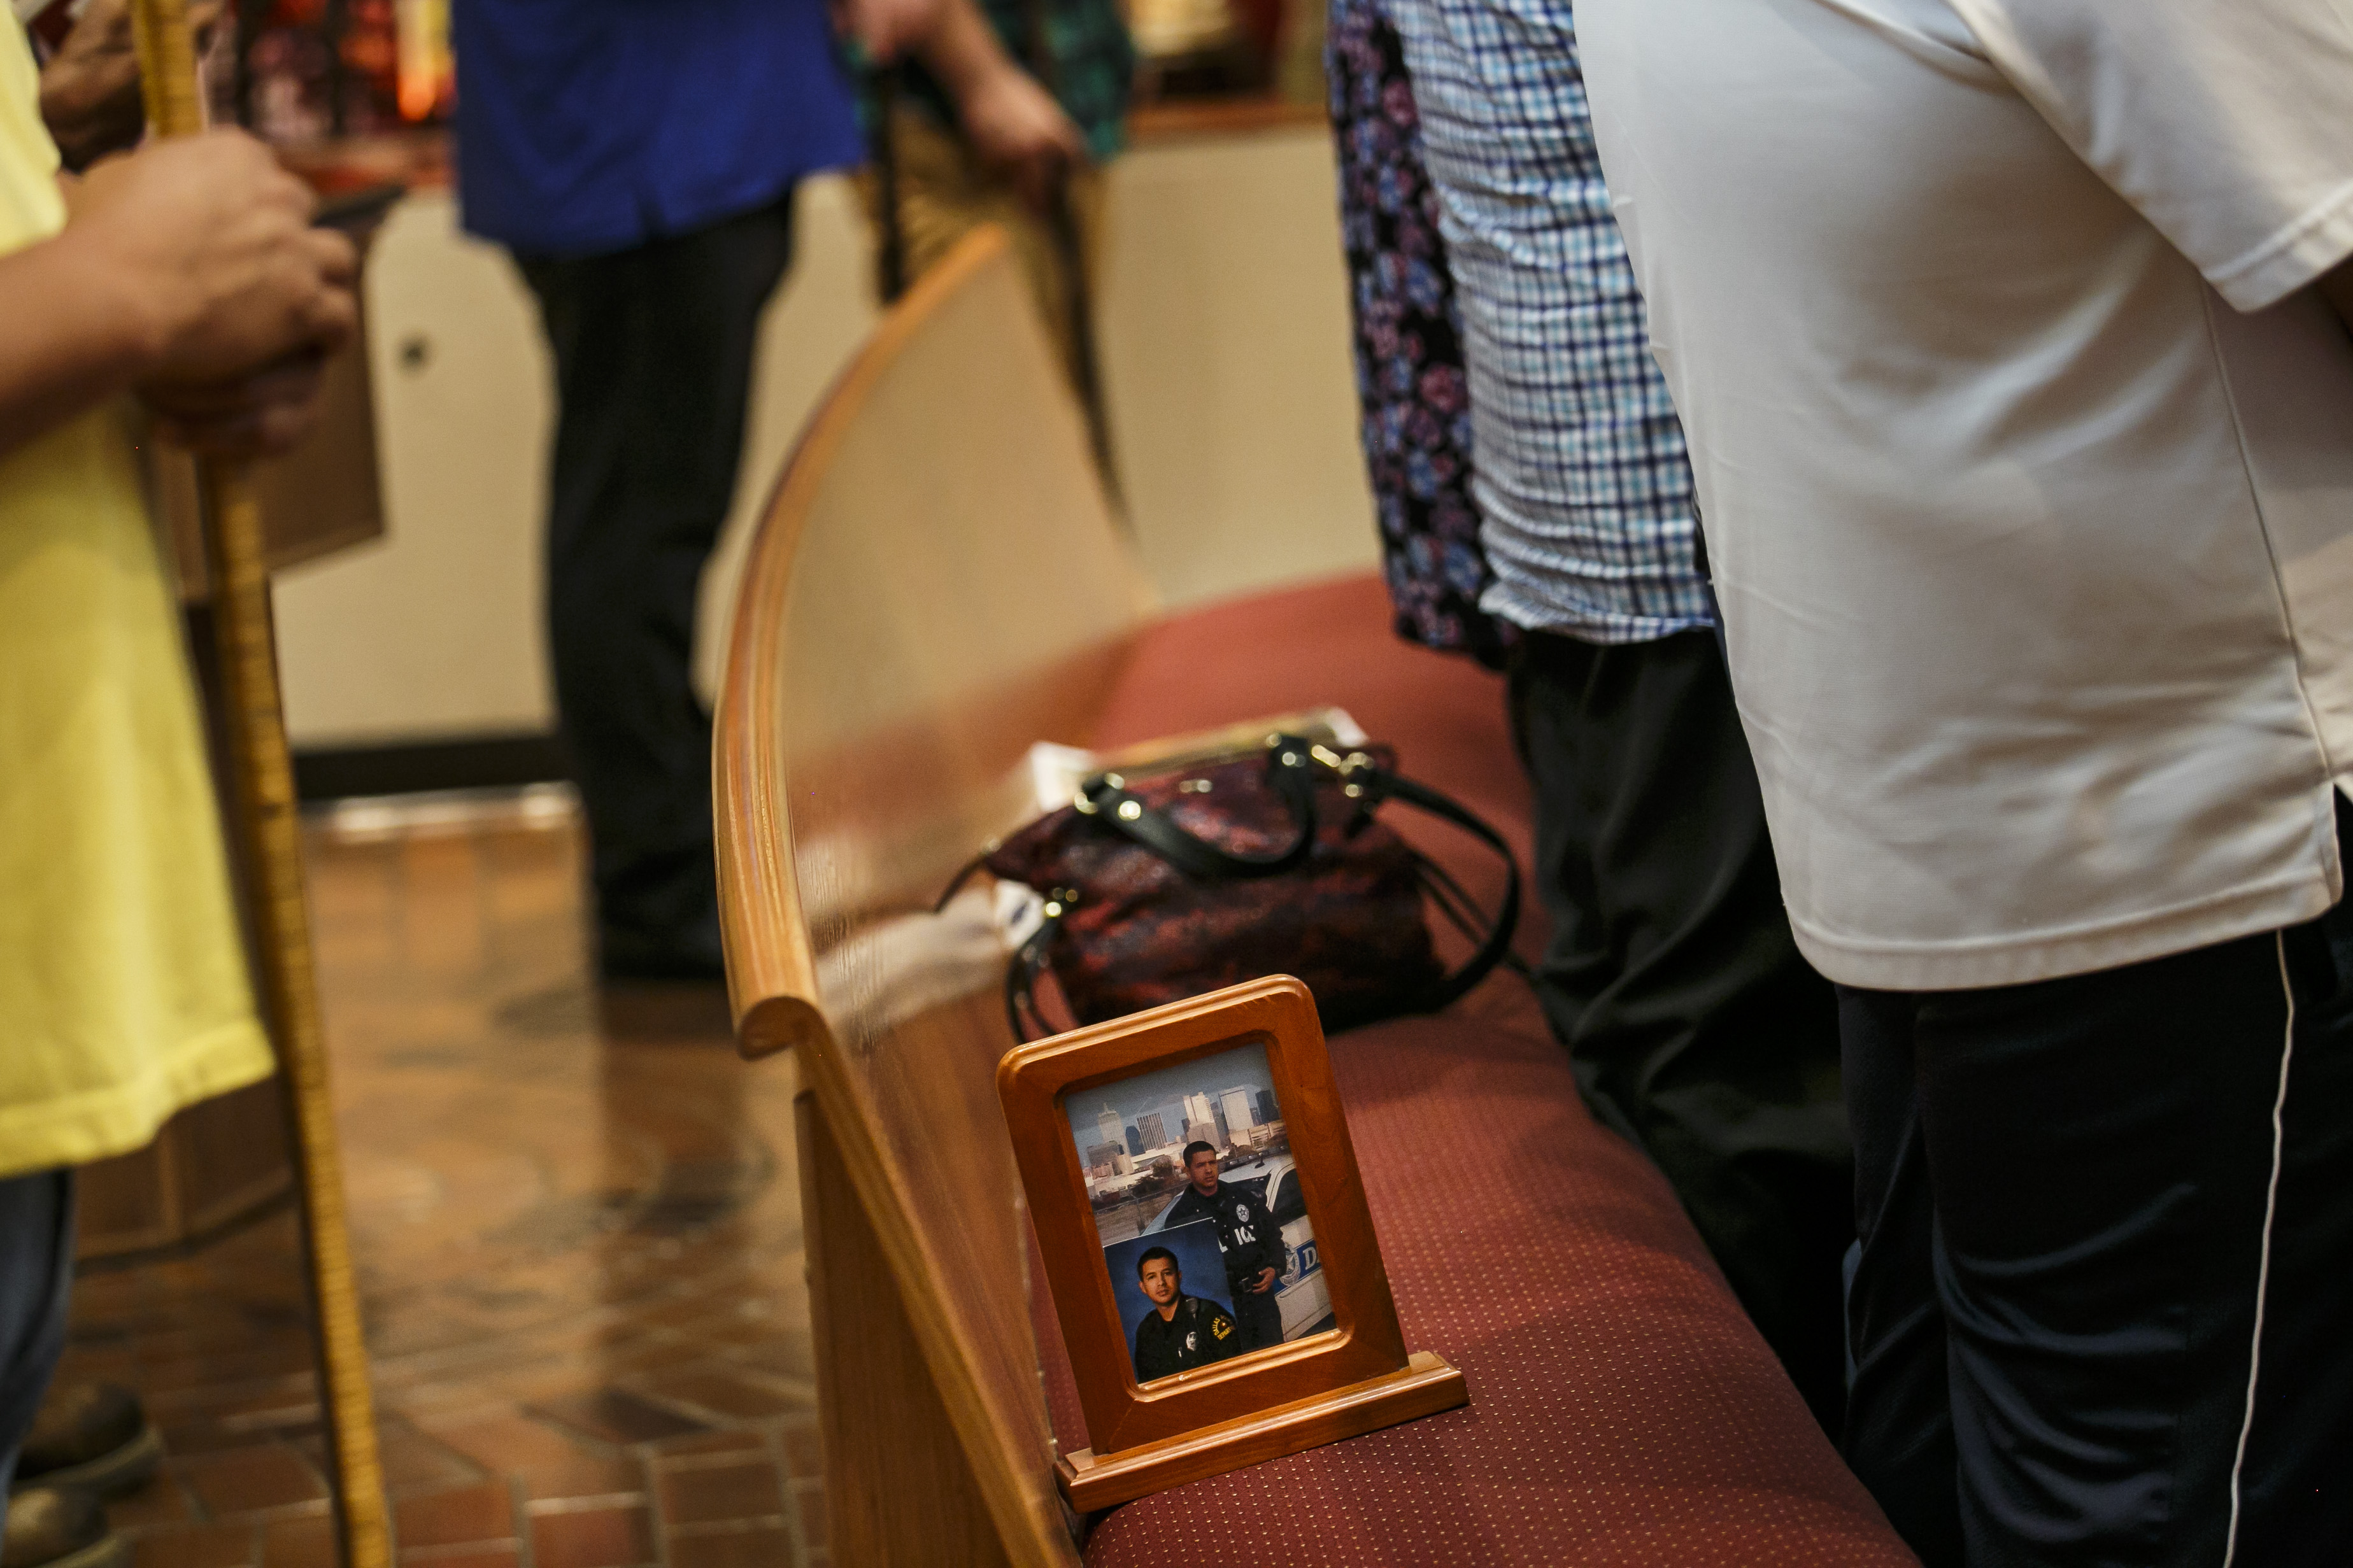 A picture frame with two portraits of slain police officer Patrick Zamarripa, sits on the pew as family members stand to pray during Sunday mass at All Saints Catholic Church, in Dallas, Texas, on July 10, 2016.